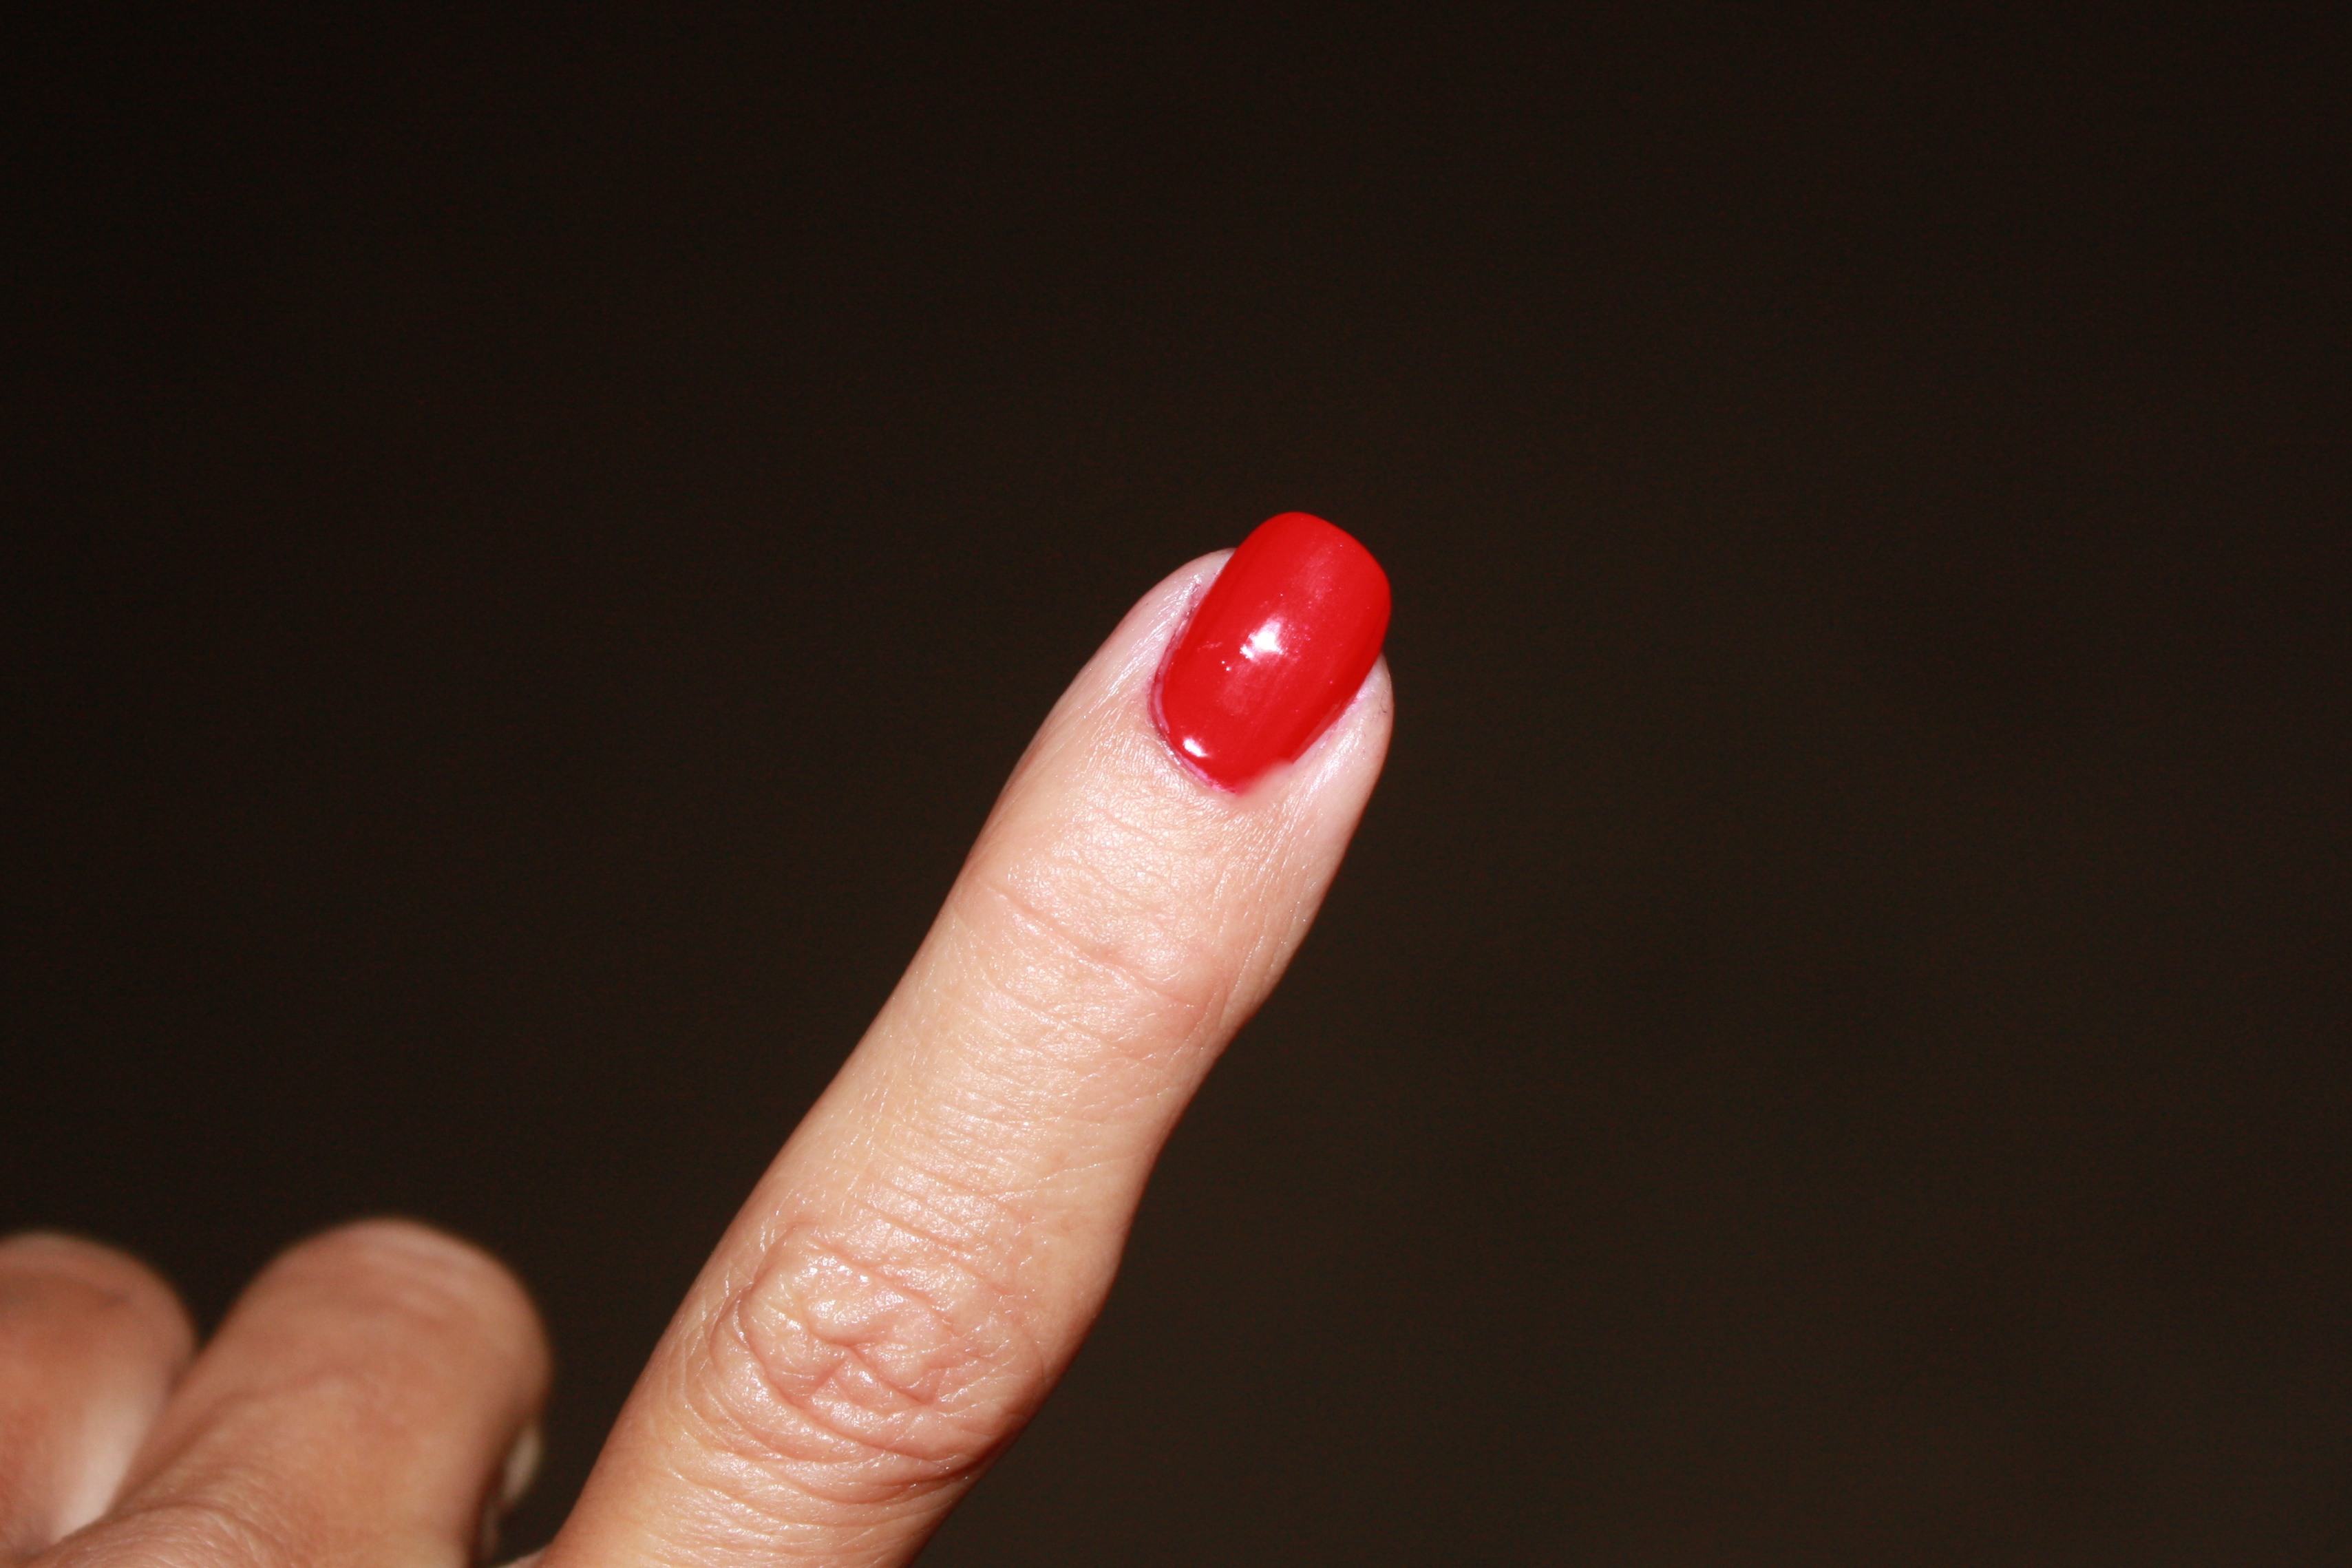 How To Fix A Crease In Nail Polish